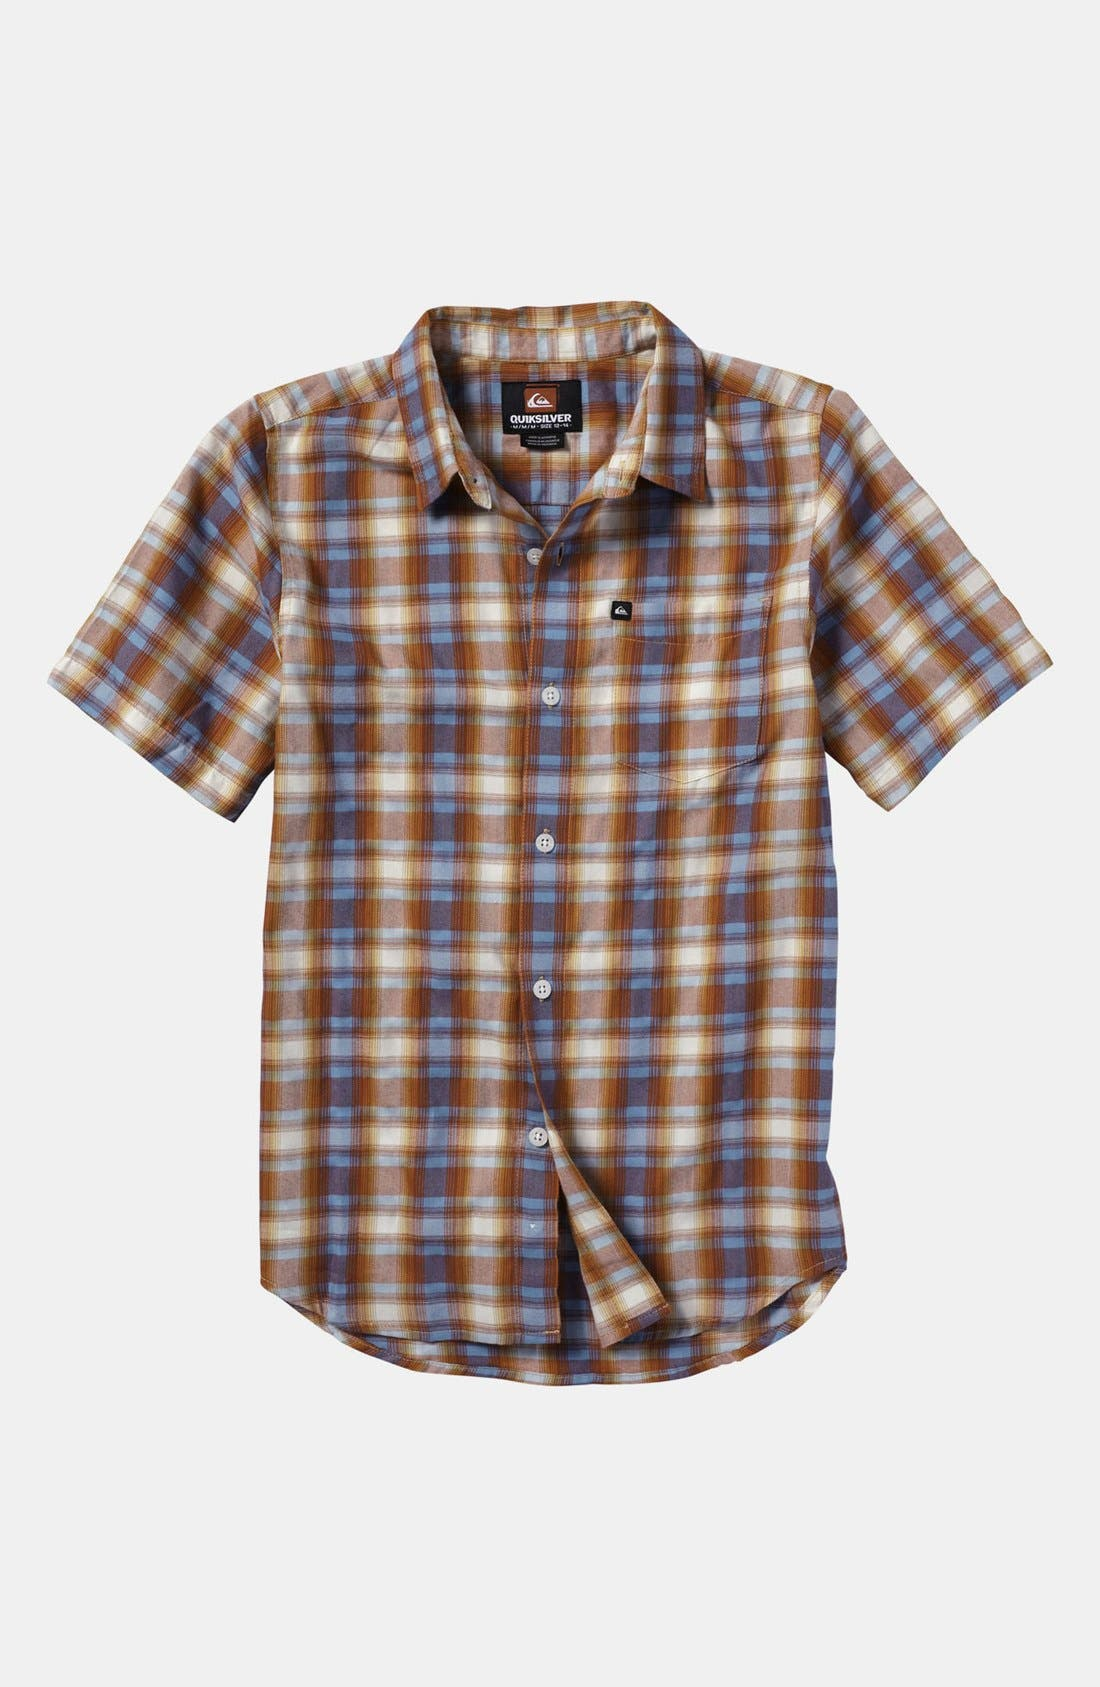 Alternate Image 1 Selected - Quiksilver 'Flash Surf' Woven Shirt (Toddler)